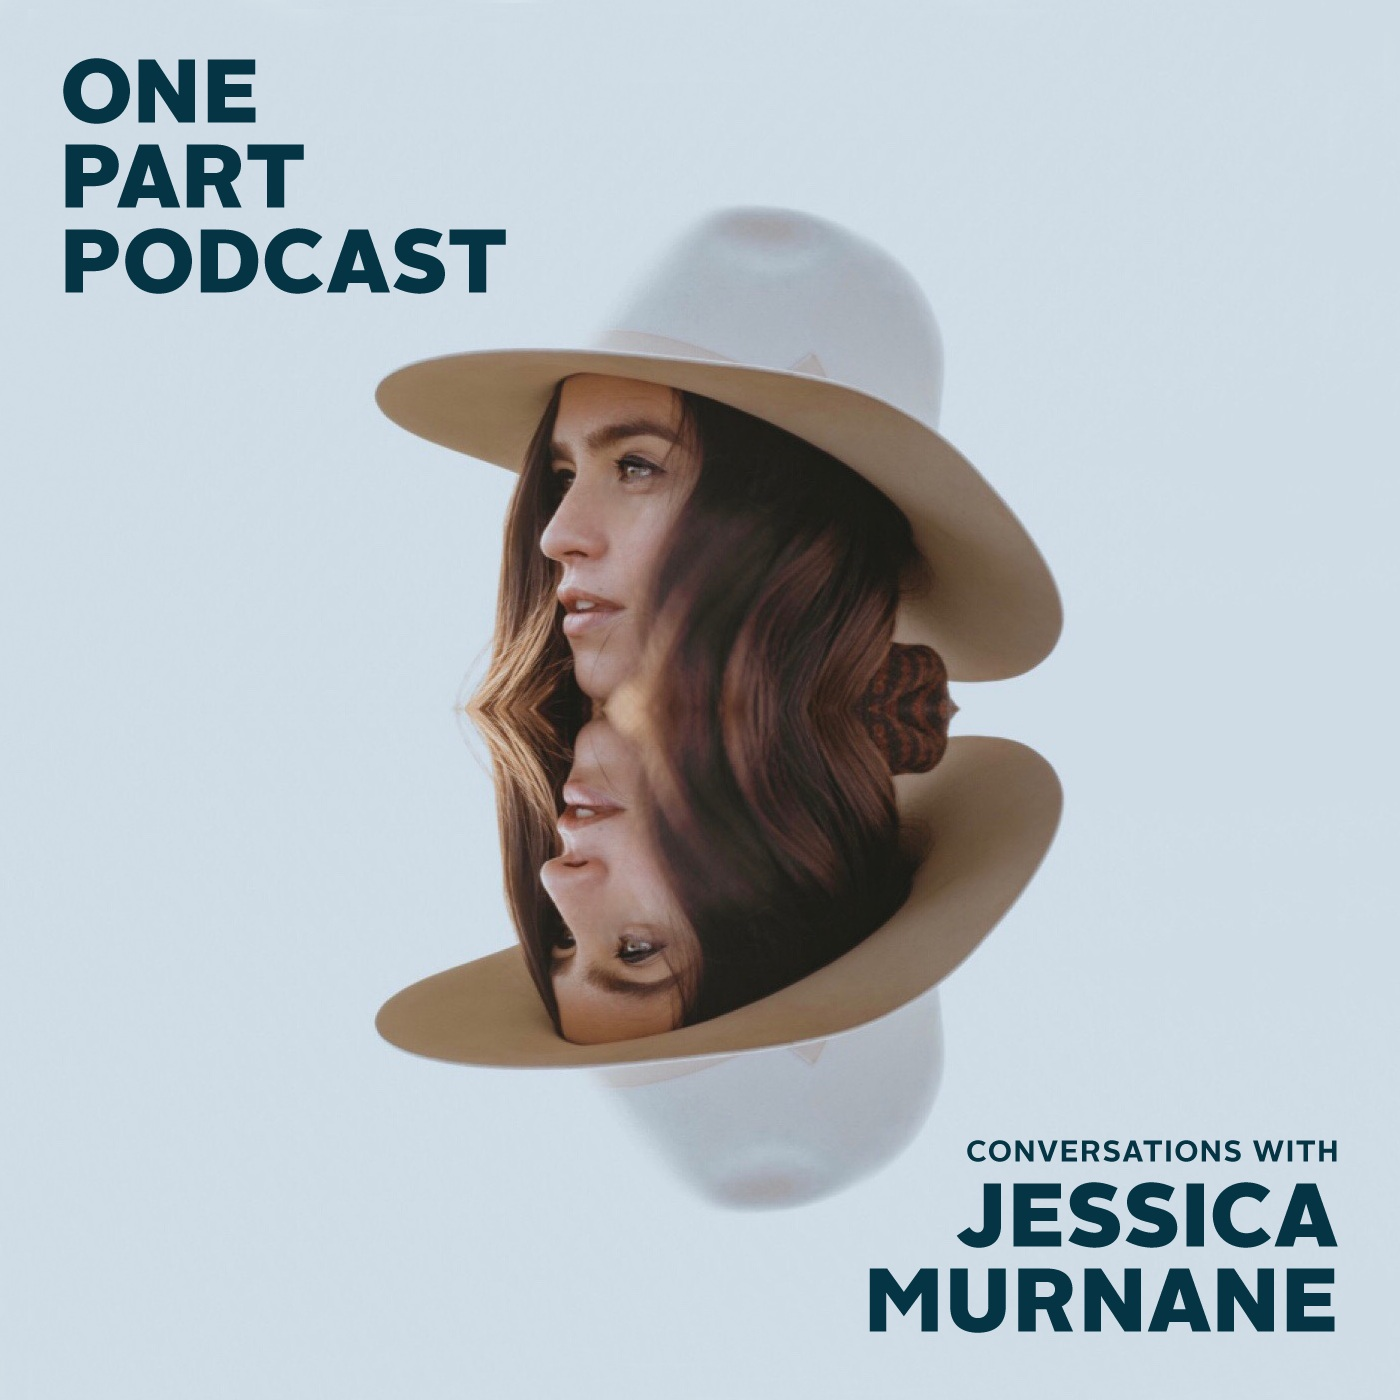 One Part Podcast - Guest on Jessica Murnane's podcast discussing deleting your dating apps and being happy being single.